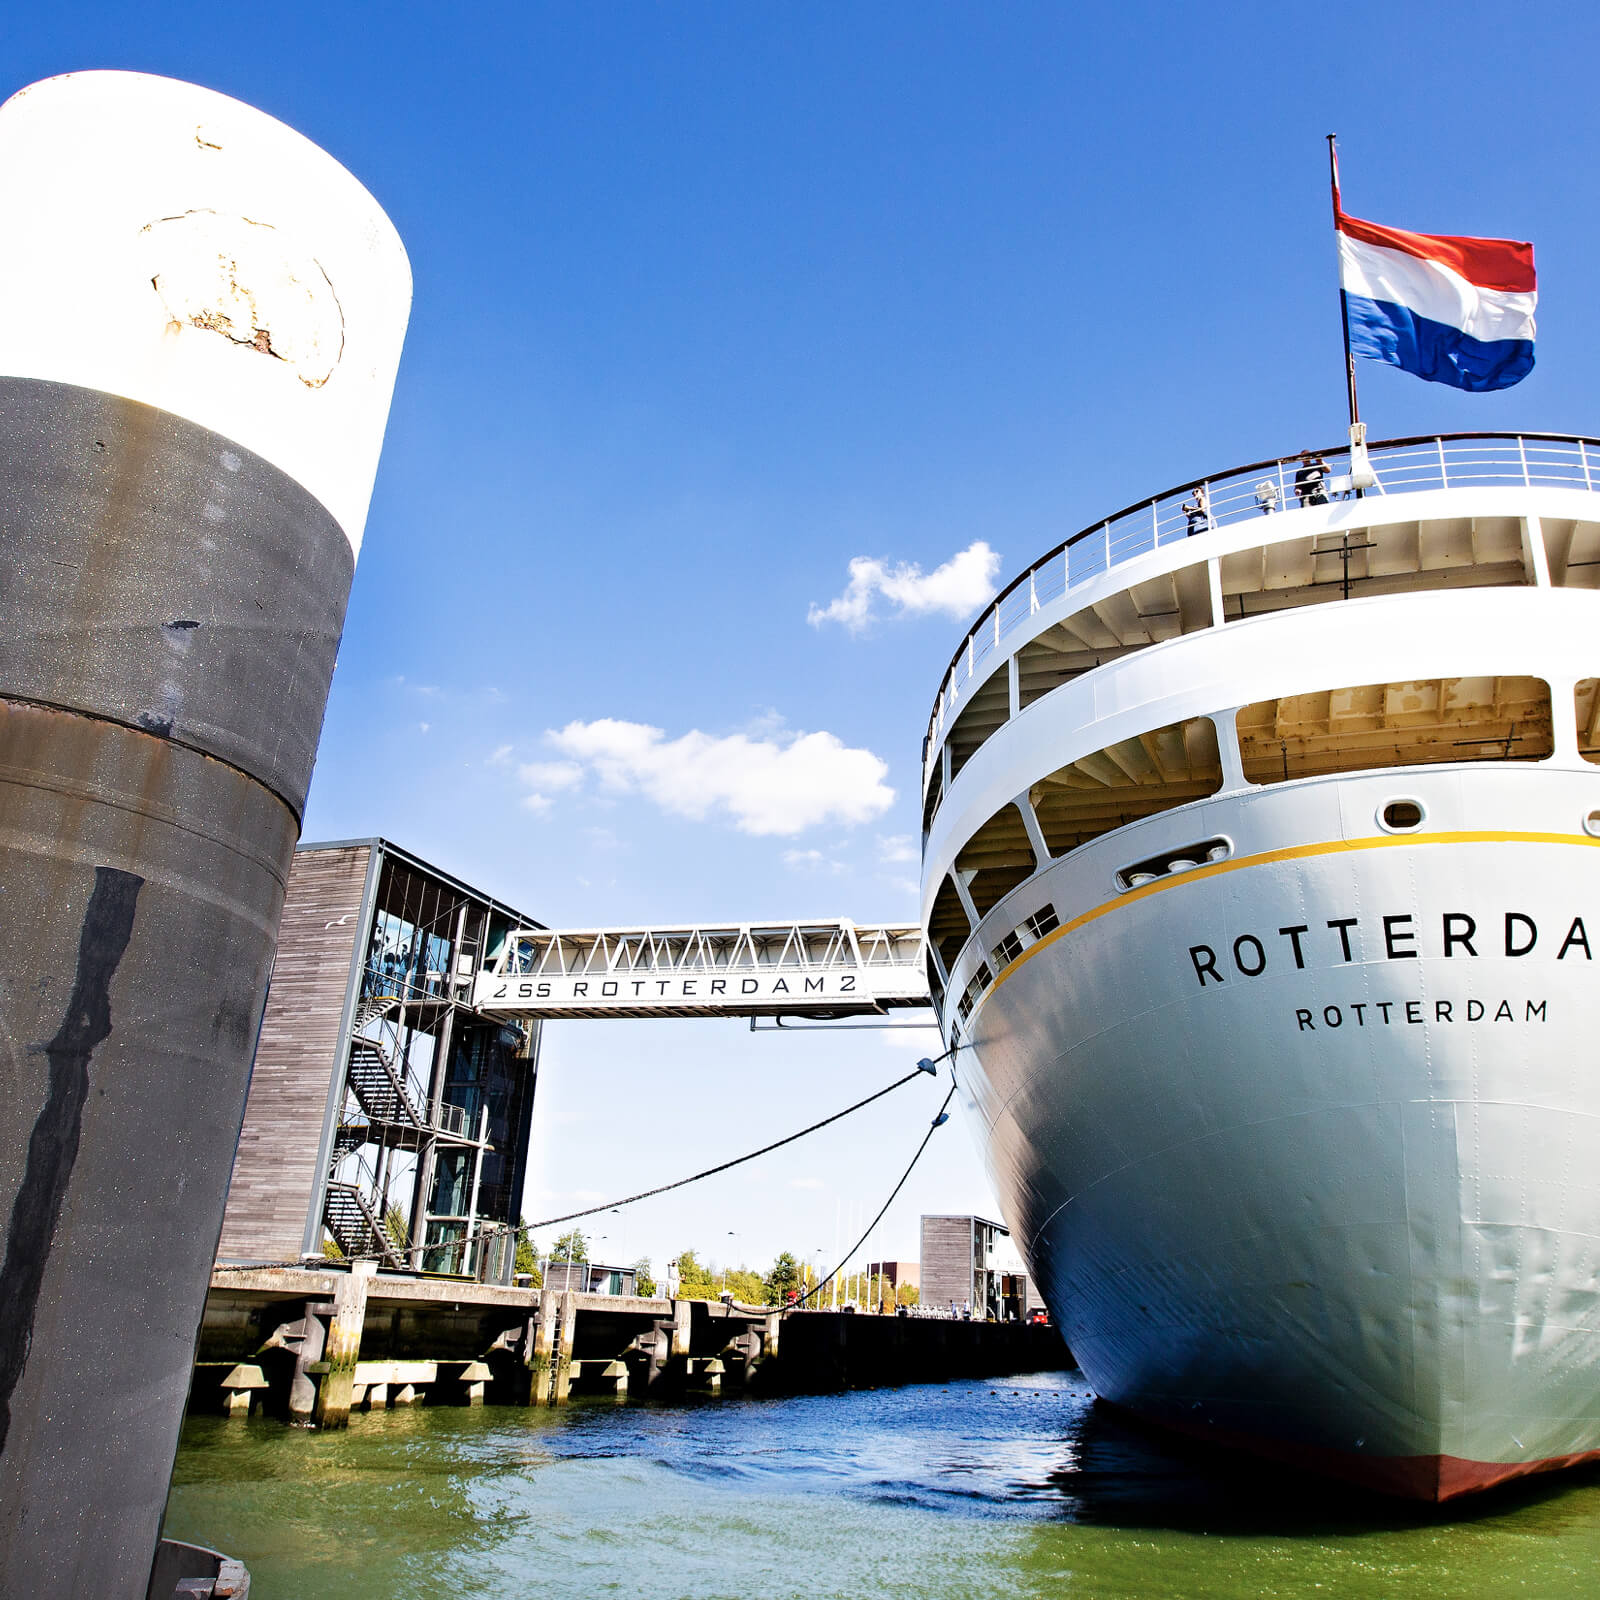 Maintenance of cruise ships can return to Rotterdam